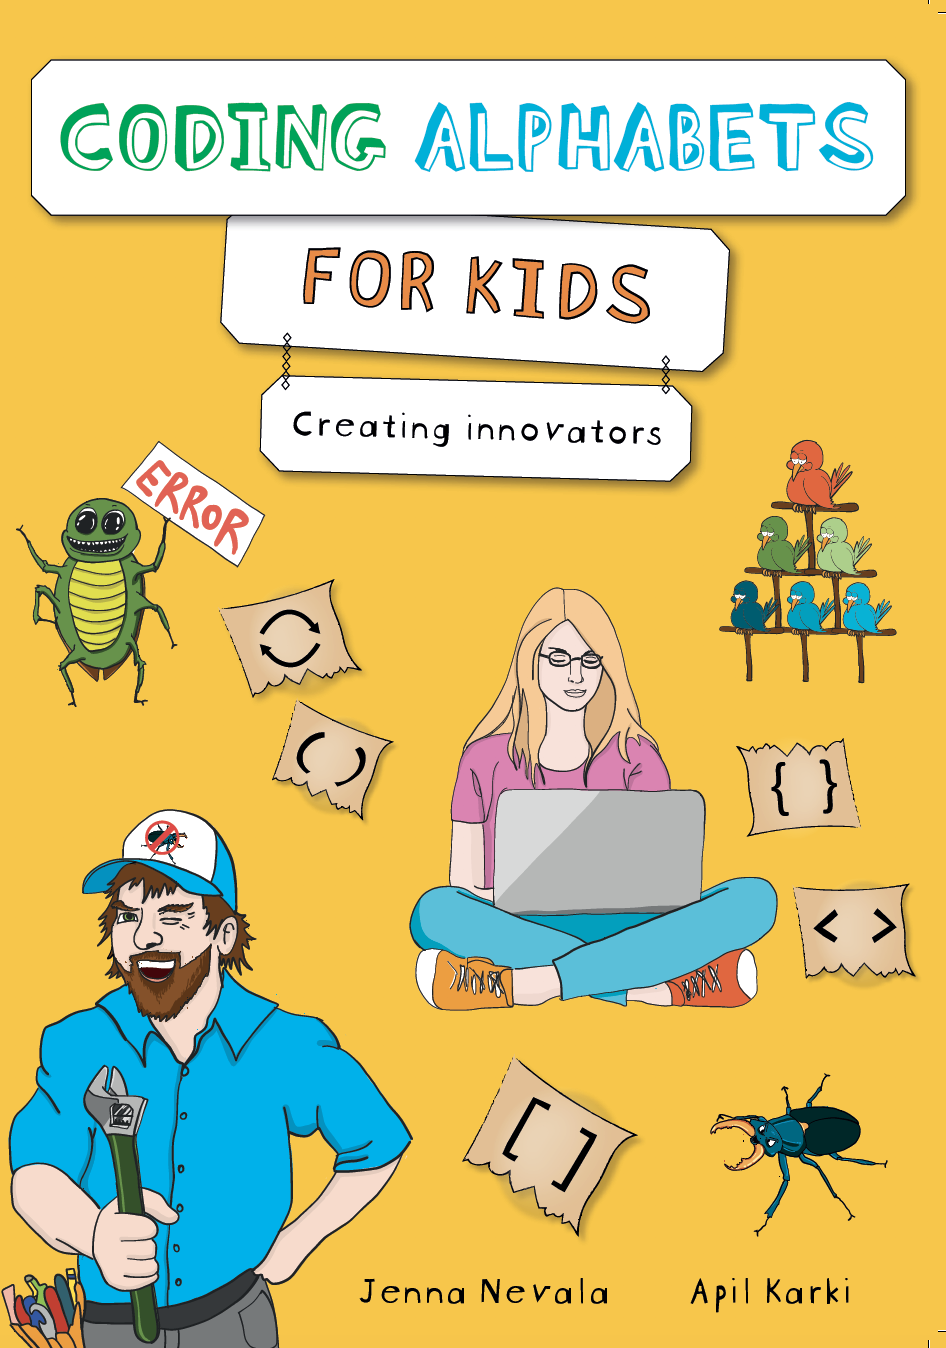 Coding for kids with basic terms